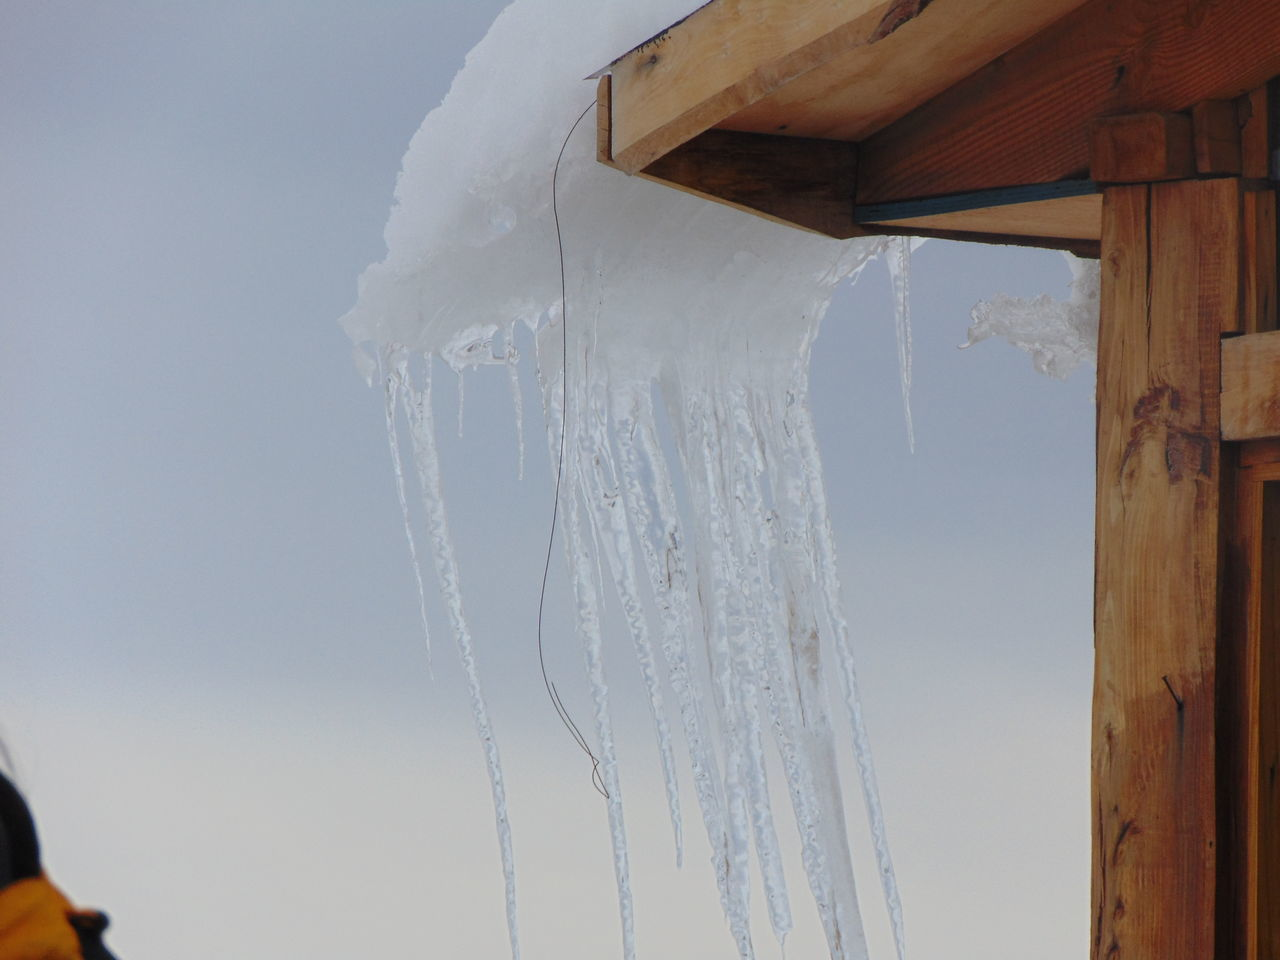 All Freezing Chile♥ Cold Cordilheira Dos Andes Frozen Frozen Water Ice Nature Sky